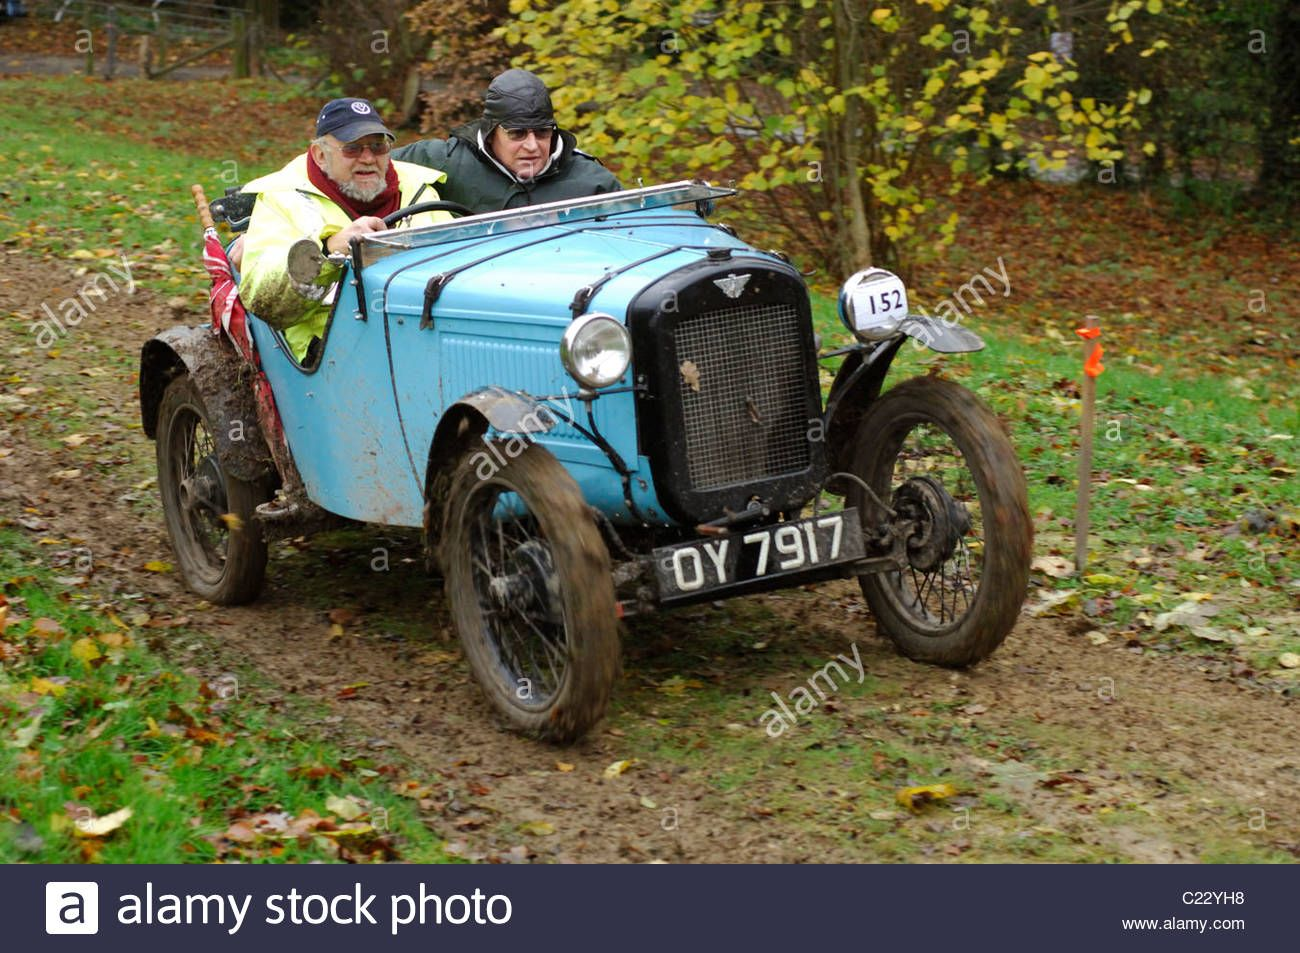 austin-7-ulster-1934-in-the-cotswold-trial-at-the-prescott-hill-climb-C22YH8.jpg